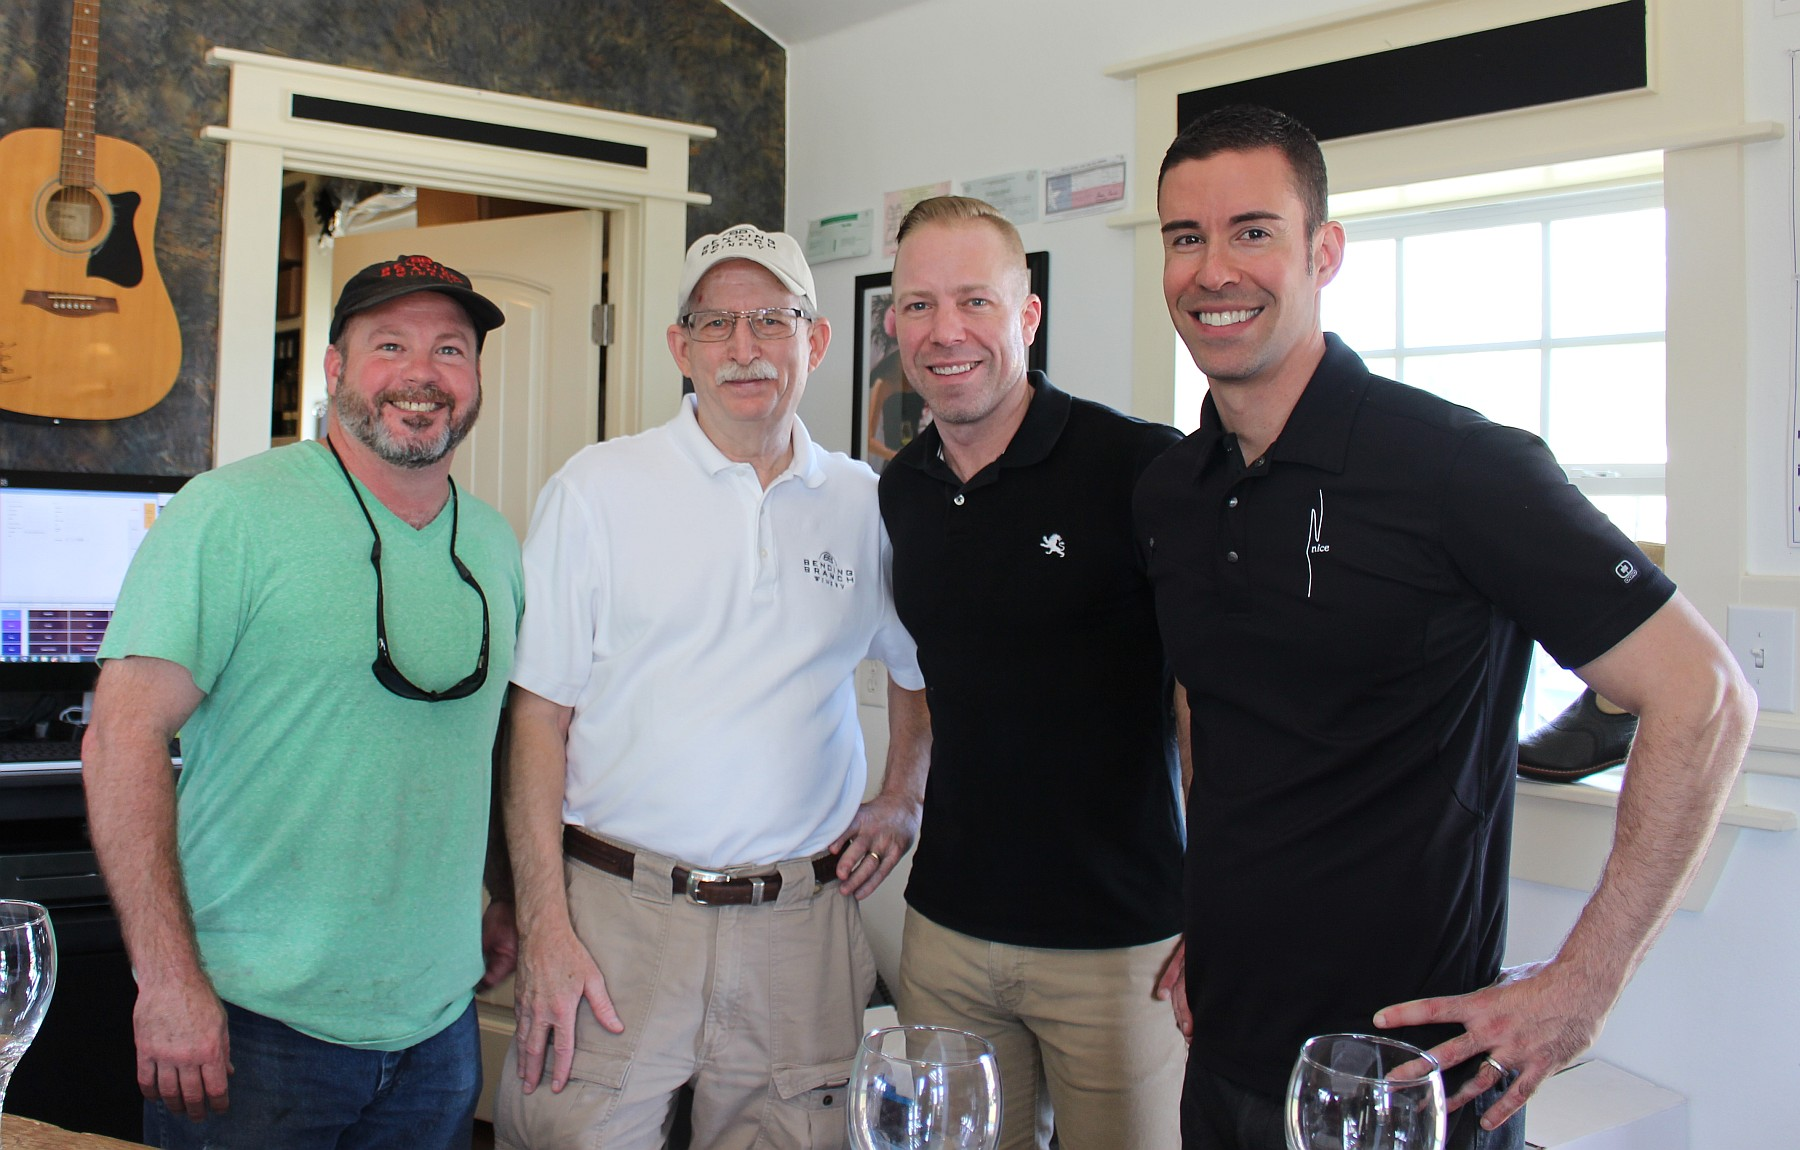 John Rivenburgh, Dr. Bob Young, Ian Eastveld, Ryan Levy